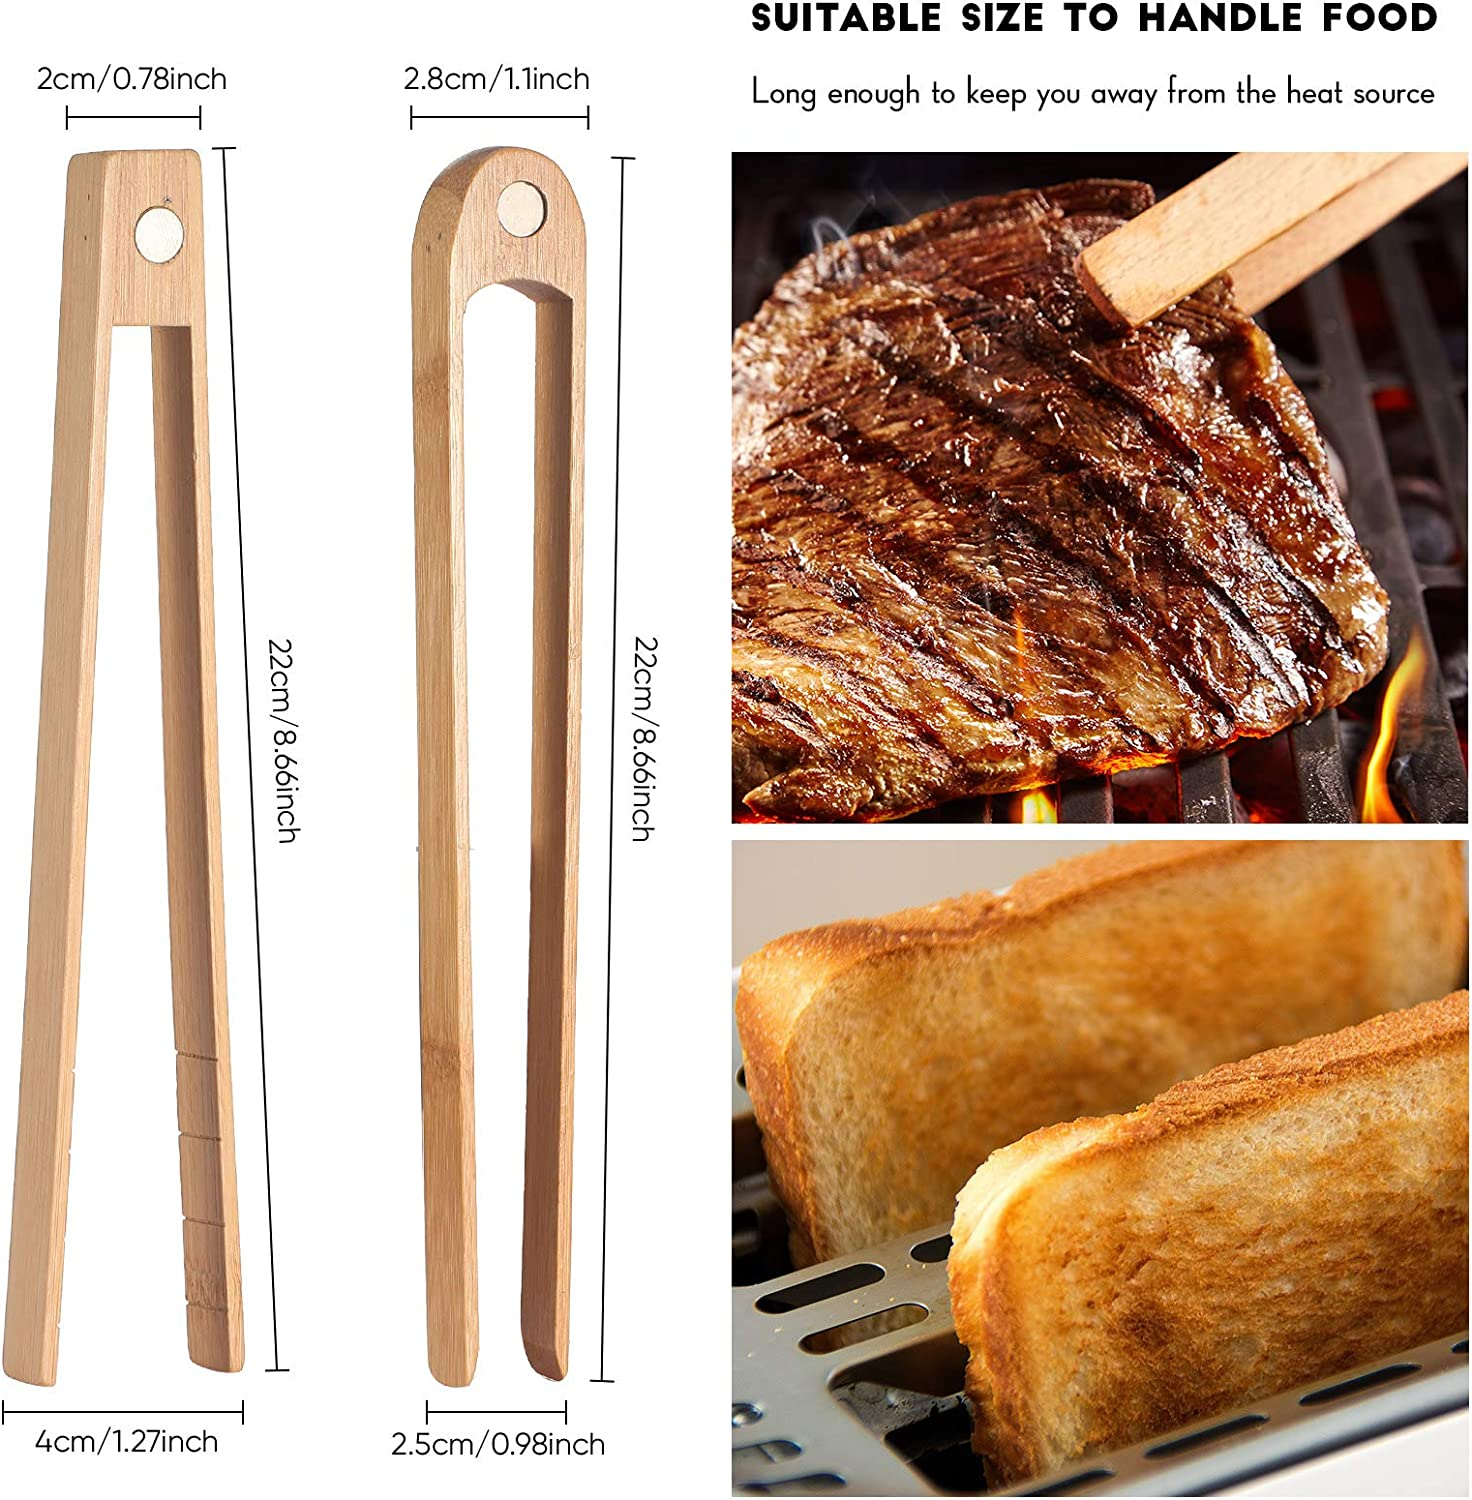 2 Pieces Magnetic Bamboo Toaster Tongs 8.7 Inch Wooden Kitchen Toast Tongs for Cooking Natural Bamboo Kitchen Utensils Suitable for Bagel Toast Muffin Bread Bacon Cake